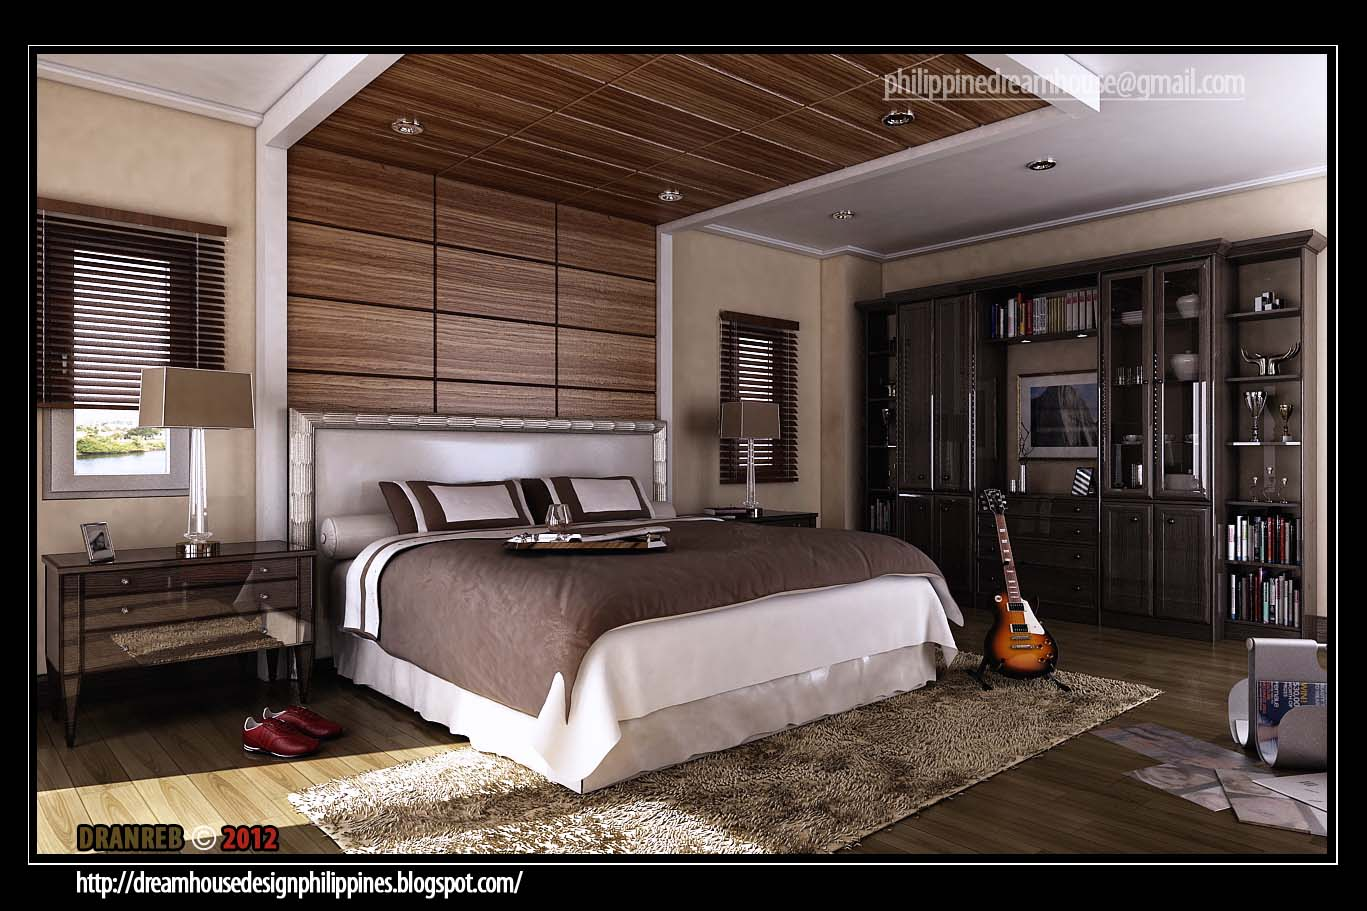 Philippine dream house design the master 39 s bedroom for Master bedroom images